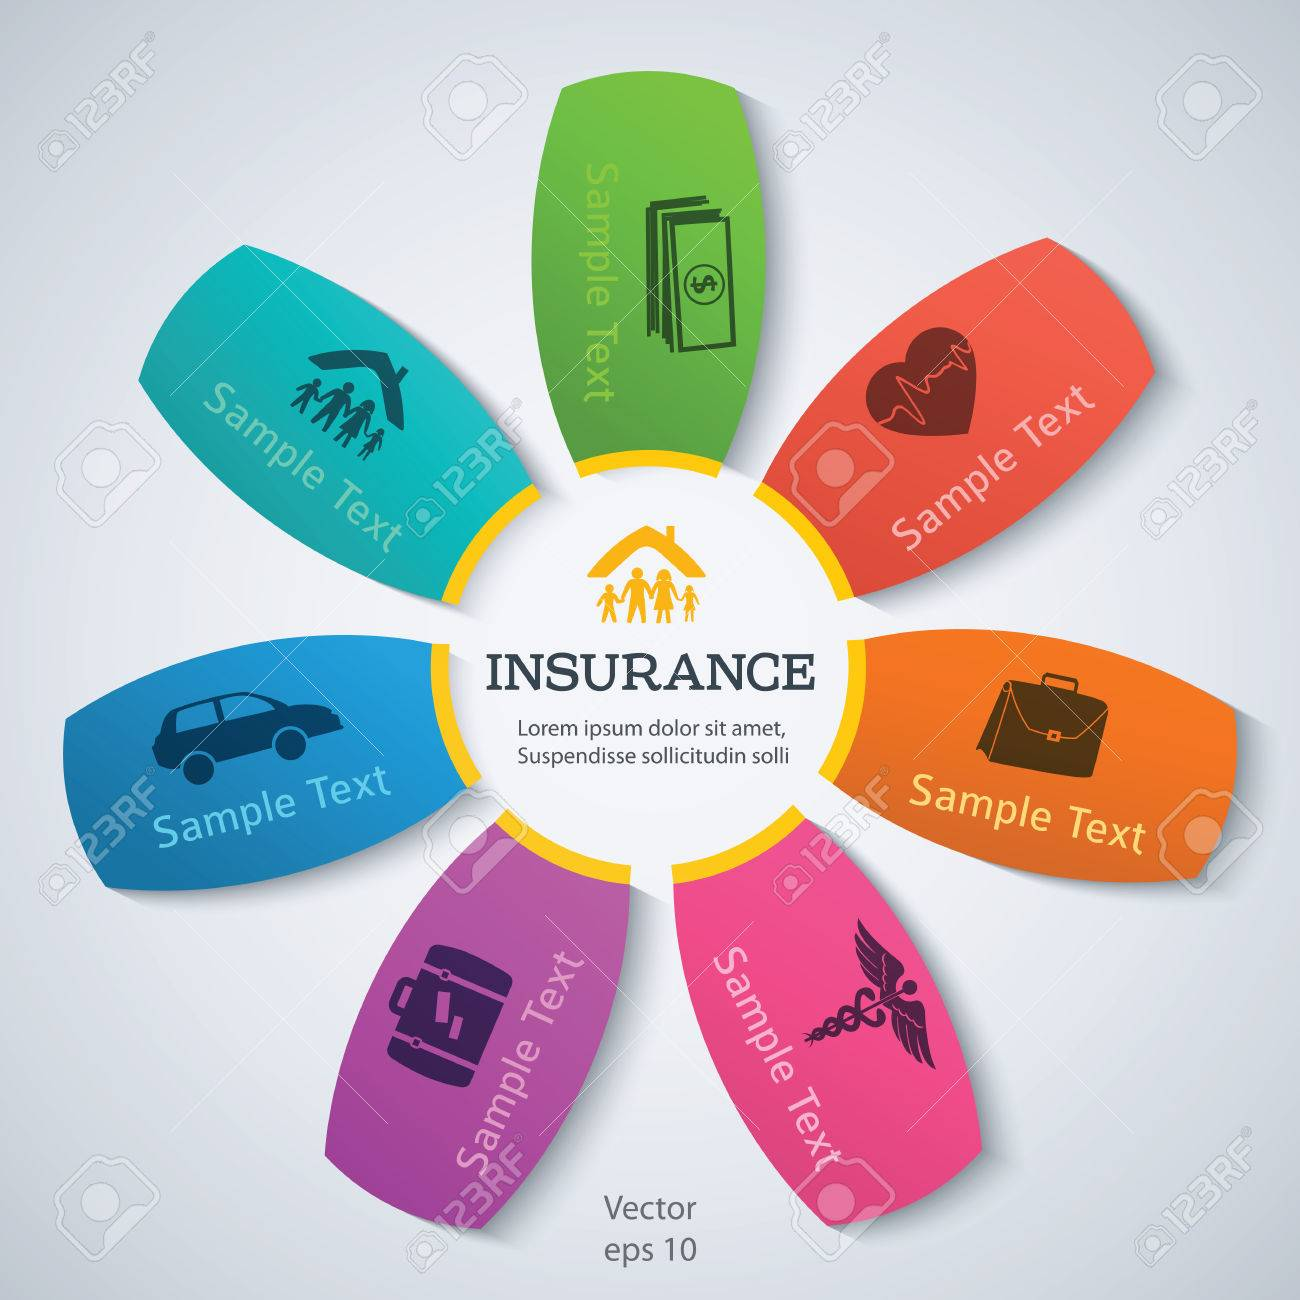 Business Service Steps Options Modern Design Style Infographic Of Different Kinds Insurance Vector Illustration Can Be Used